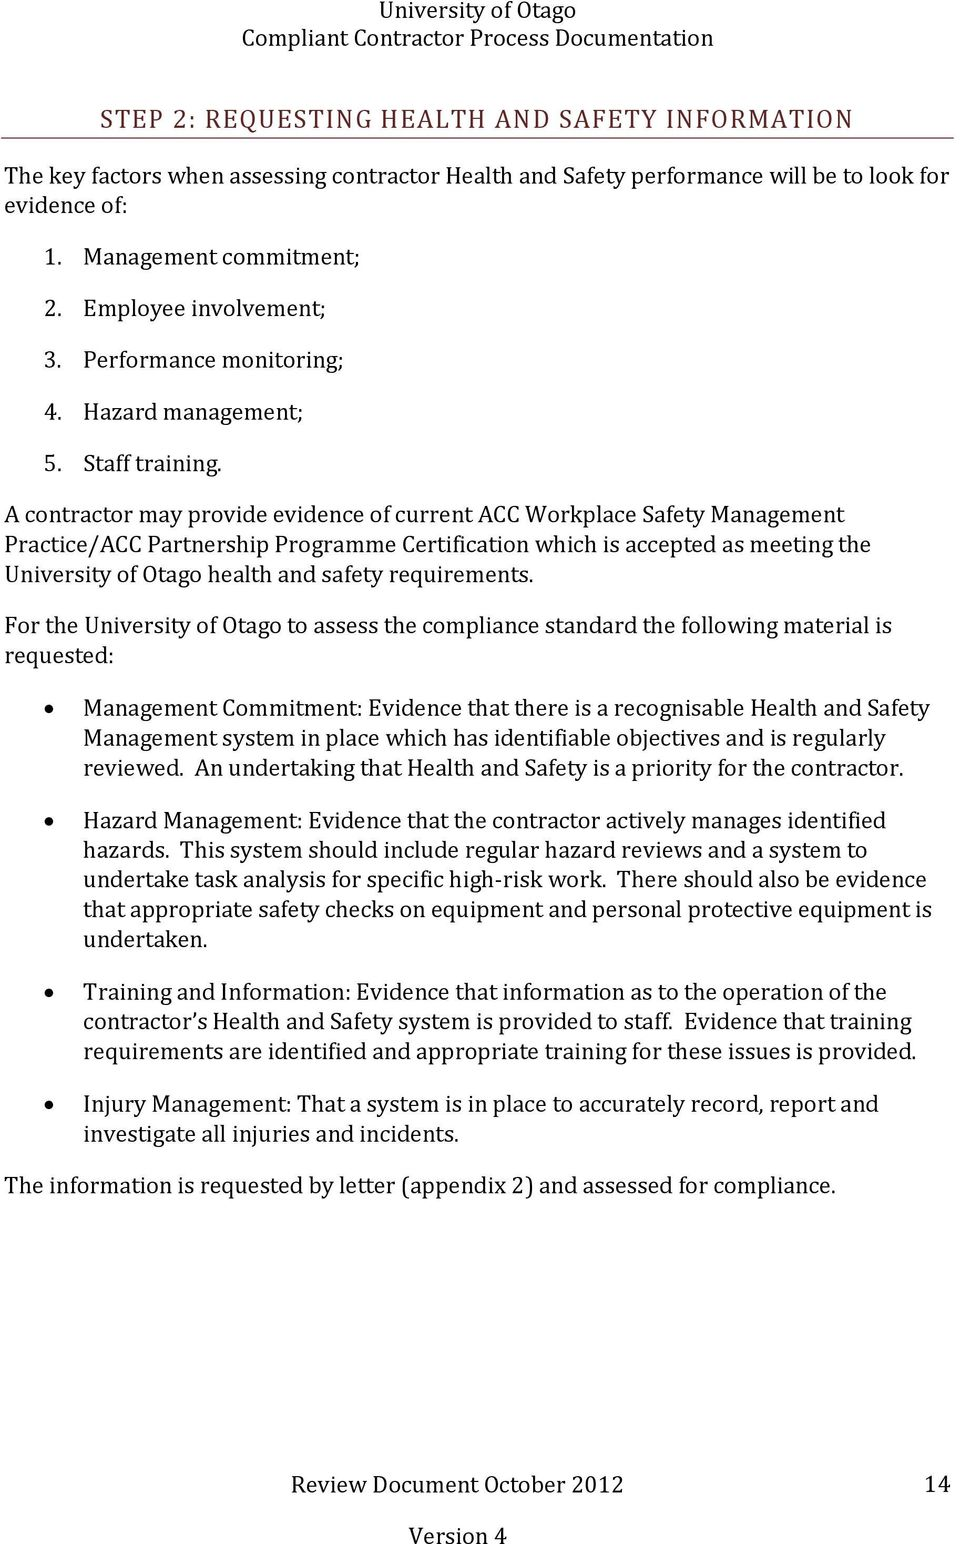 A contractor may provide evidence of current ACC Workplace Safety Management Practice/ACC Partnership Programme Certification which is accepted as meeting the University of Otago health and safety